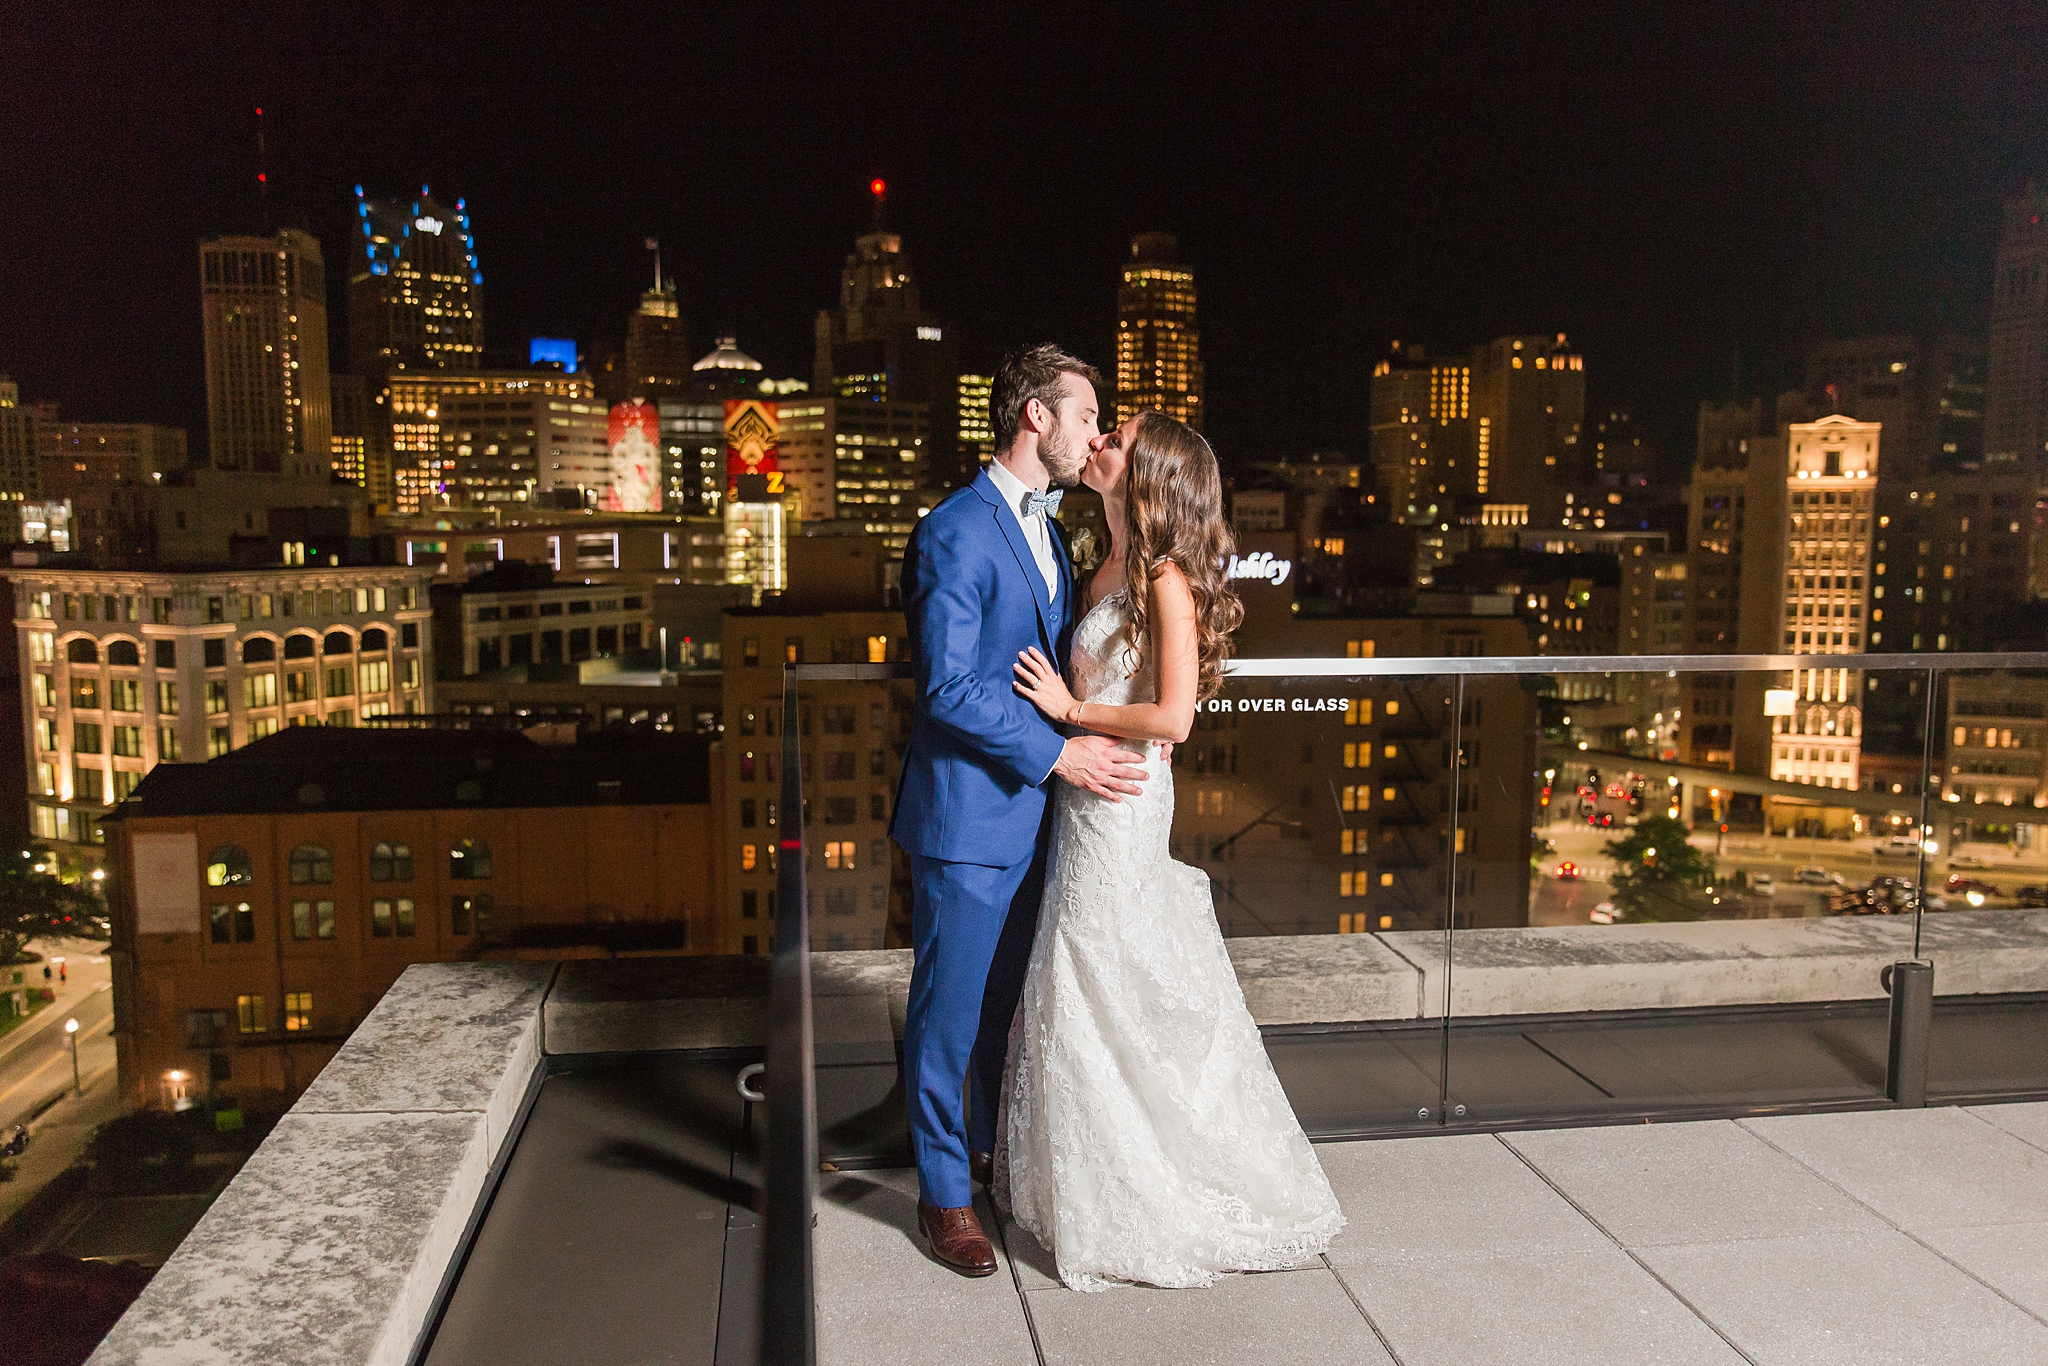 joyful-romantic-modern-laid-back-wedding-photography-in-detroit-ann-arbor-northern-mi-and-chicago-by-courtney-carolyn-photography_0022.jpg